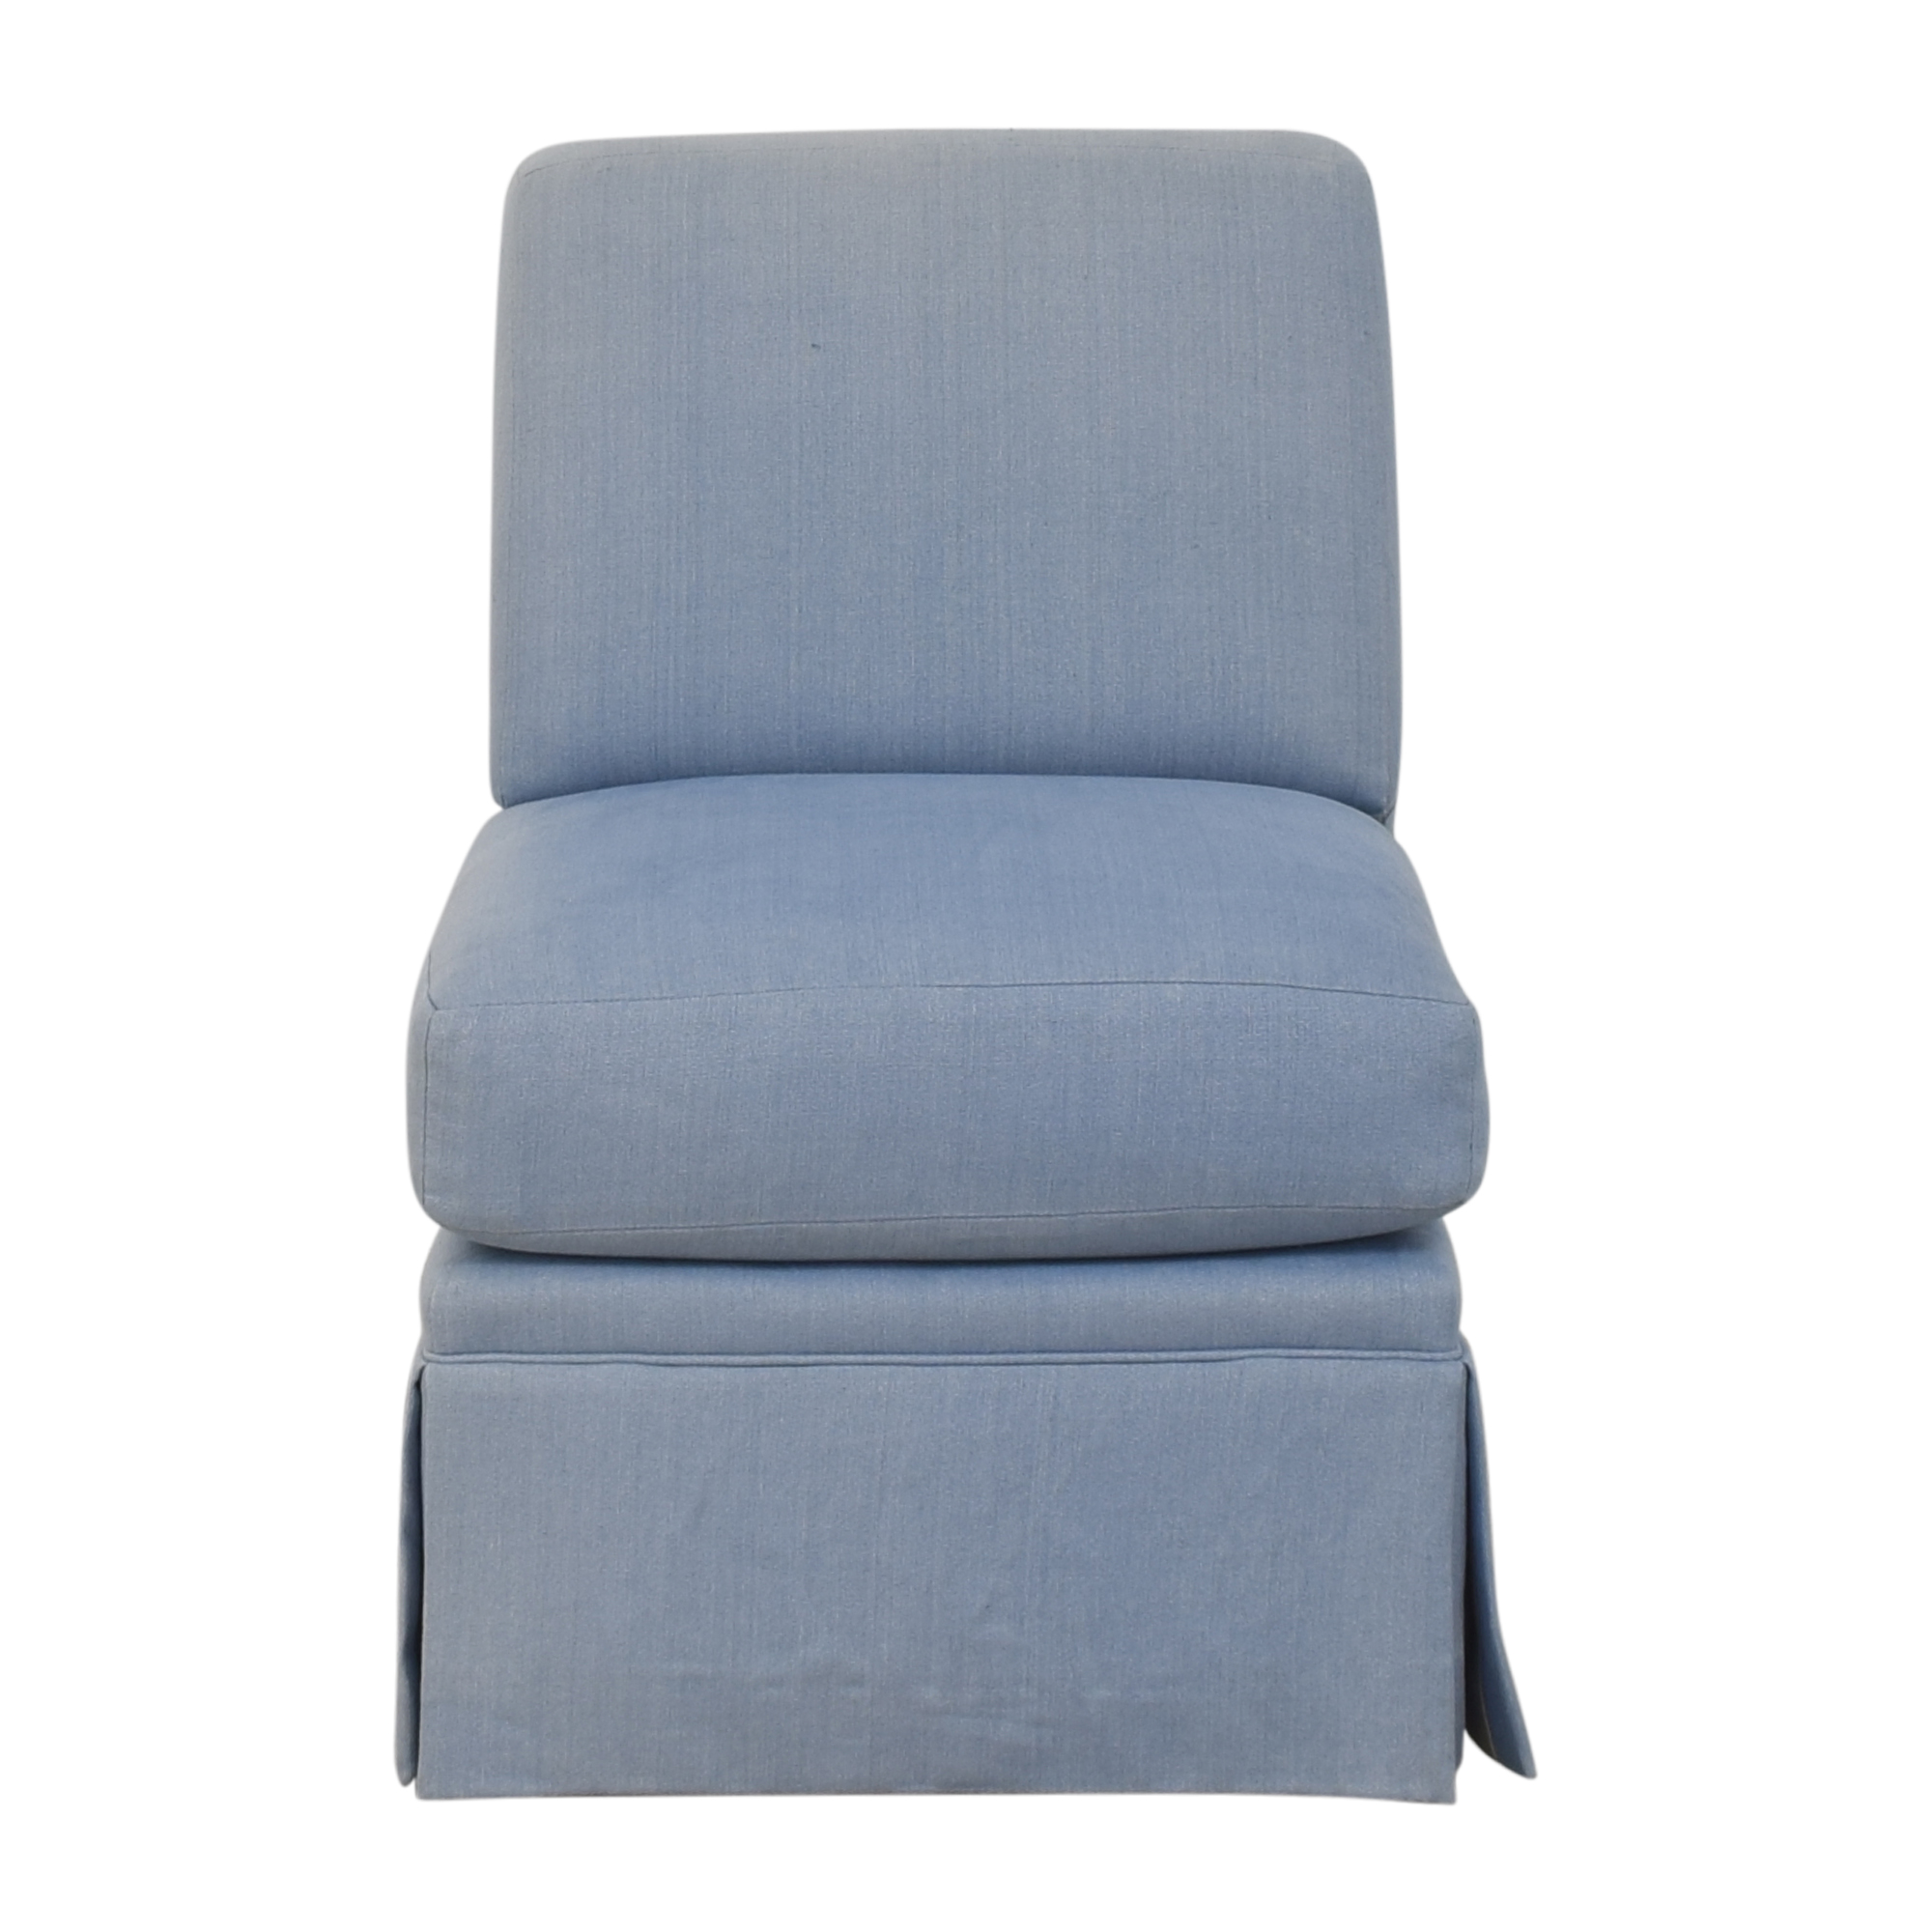 Kravet Kravet Skirted Slipper Chair pa